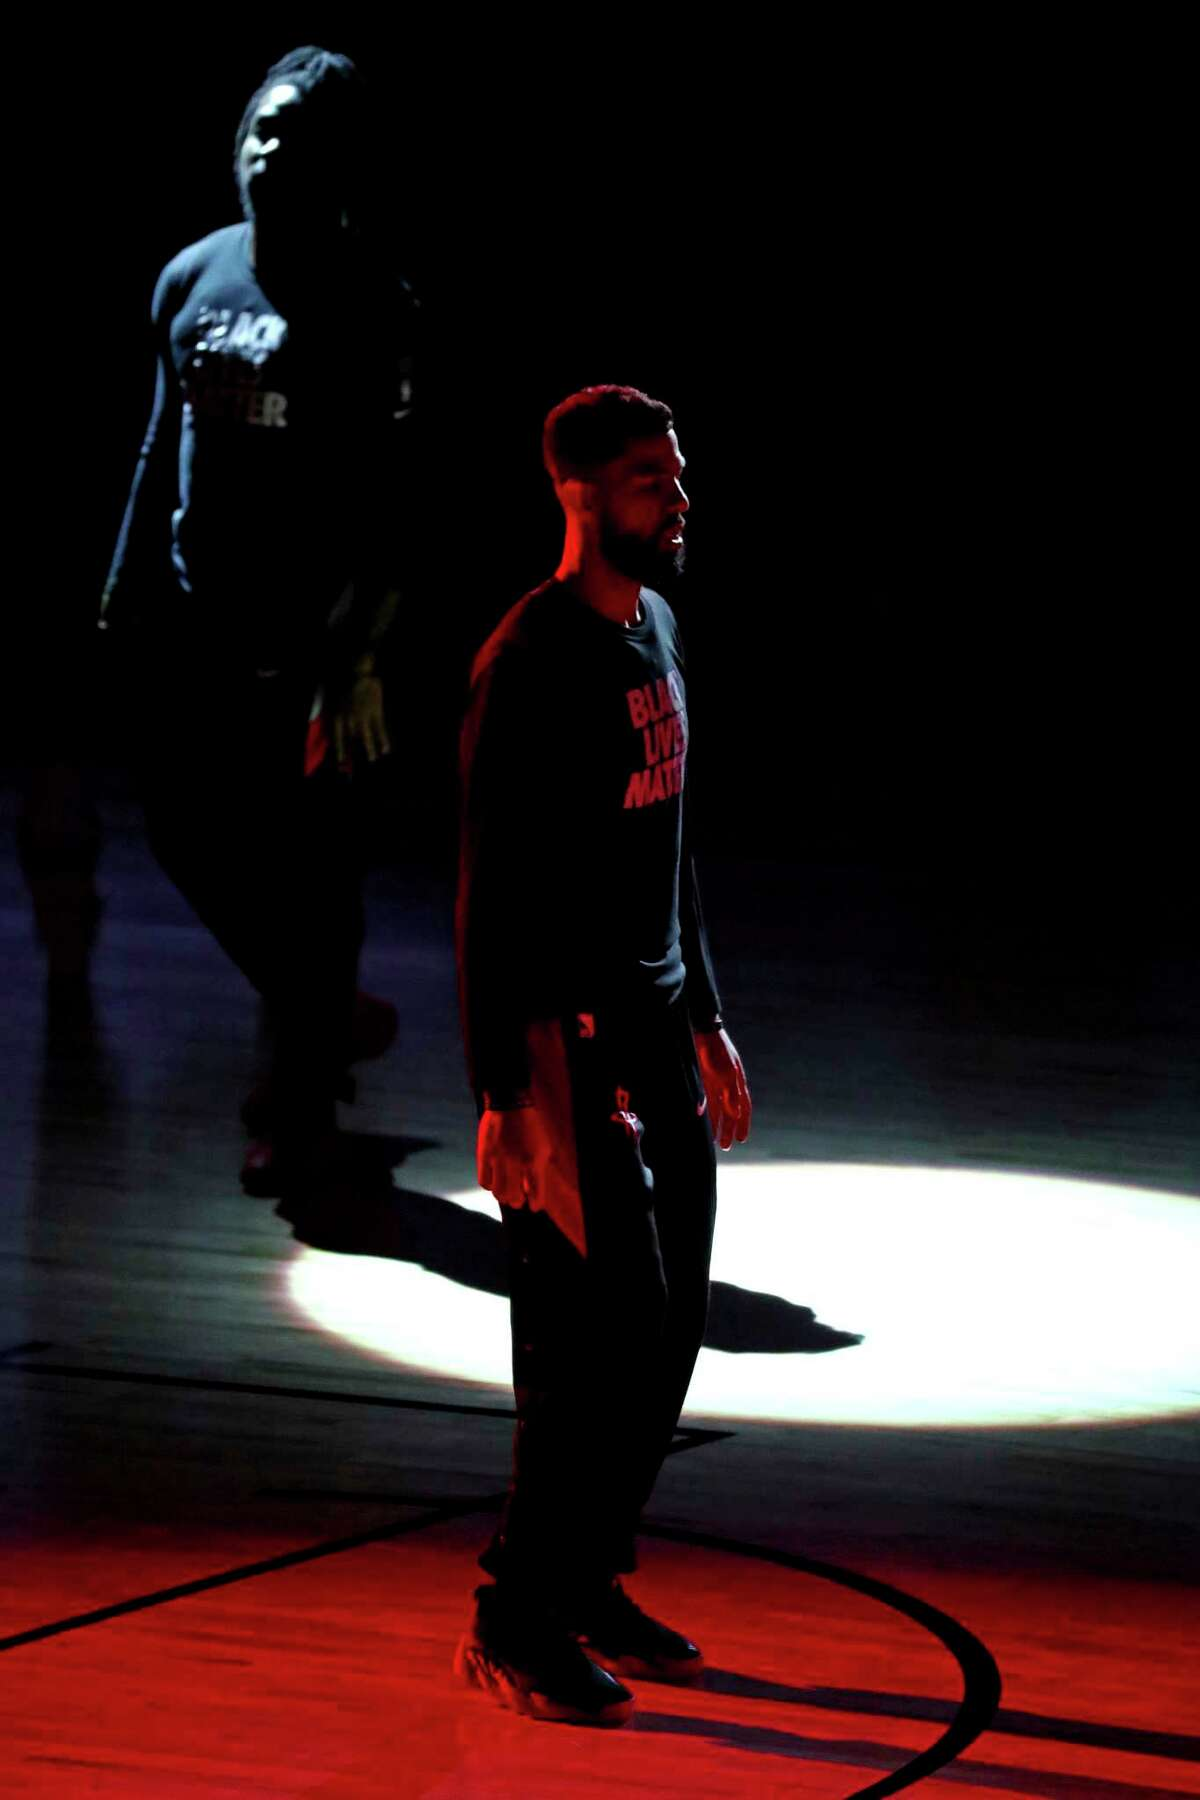 Houston Rockets guard Austin Rivers pauses before playing the Oklahoma City Thunder in Game 2 of an NBA basketball first-round playoff series, Thursday, Aug. 20, 2020, in Lake Buena Vista, Fla. (Kim Klement/Pool Photo via AP)